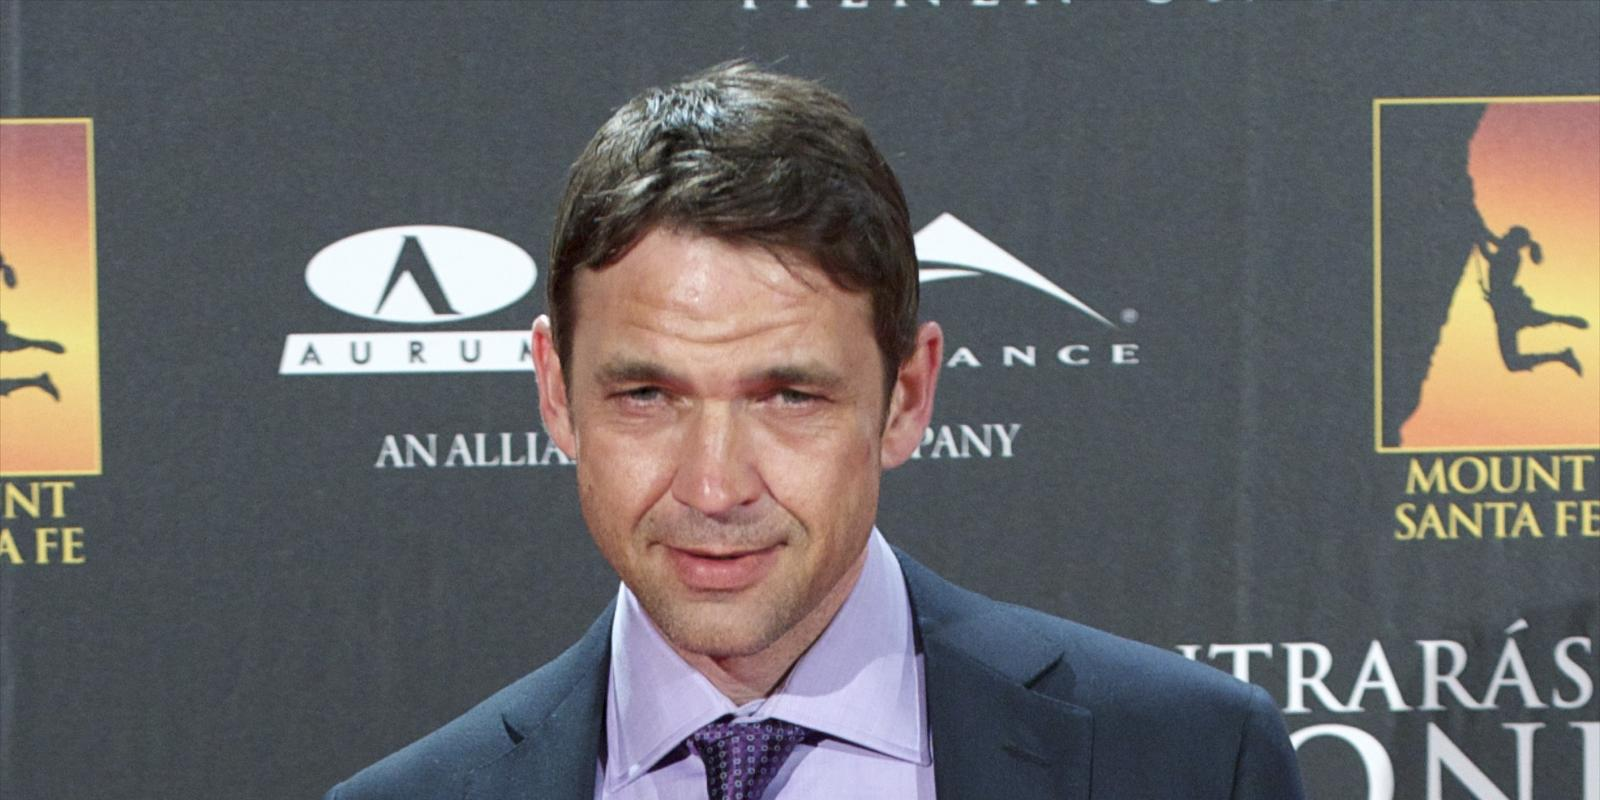 dougray scott actordougray scott wolverine, dougray scott wikipedia, dougray scott height, dougray scott films, dougray scott instagram, dougray scott, dougray scott imdb, dougray scott desperate housewives, dougray scott claire forlani, dougray scott quantico, dougray scott taken 3, dougray scott ever after, dougray scott actor, dougray scott twitter, dougray scott interview, dougray scott filmleri, dougray scott wife, dougray scott net worth, dougray scott wedding, dougray scott movies and tv shows